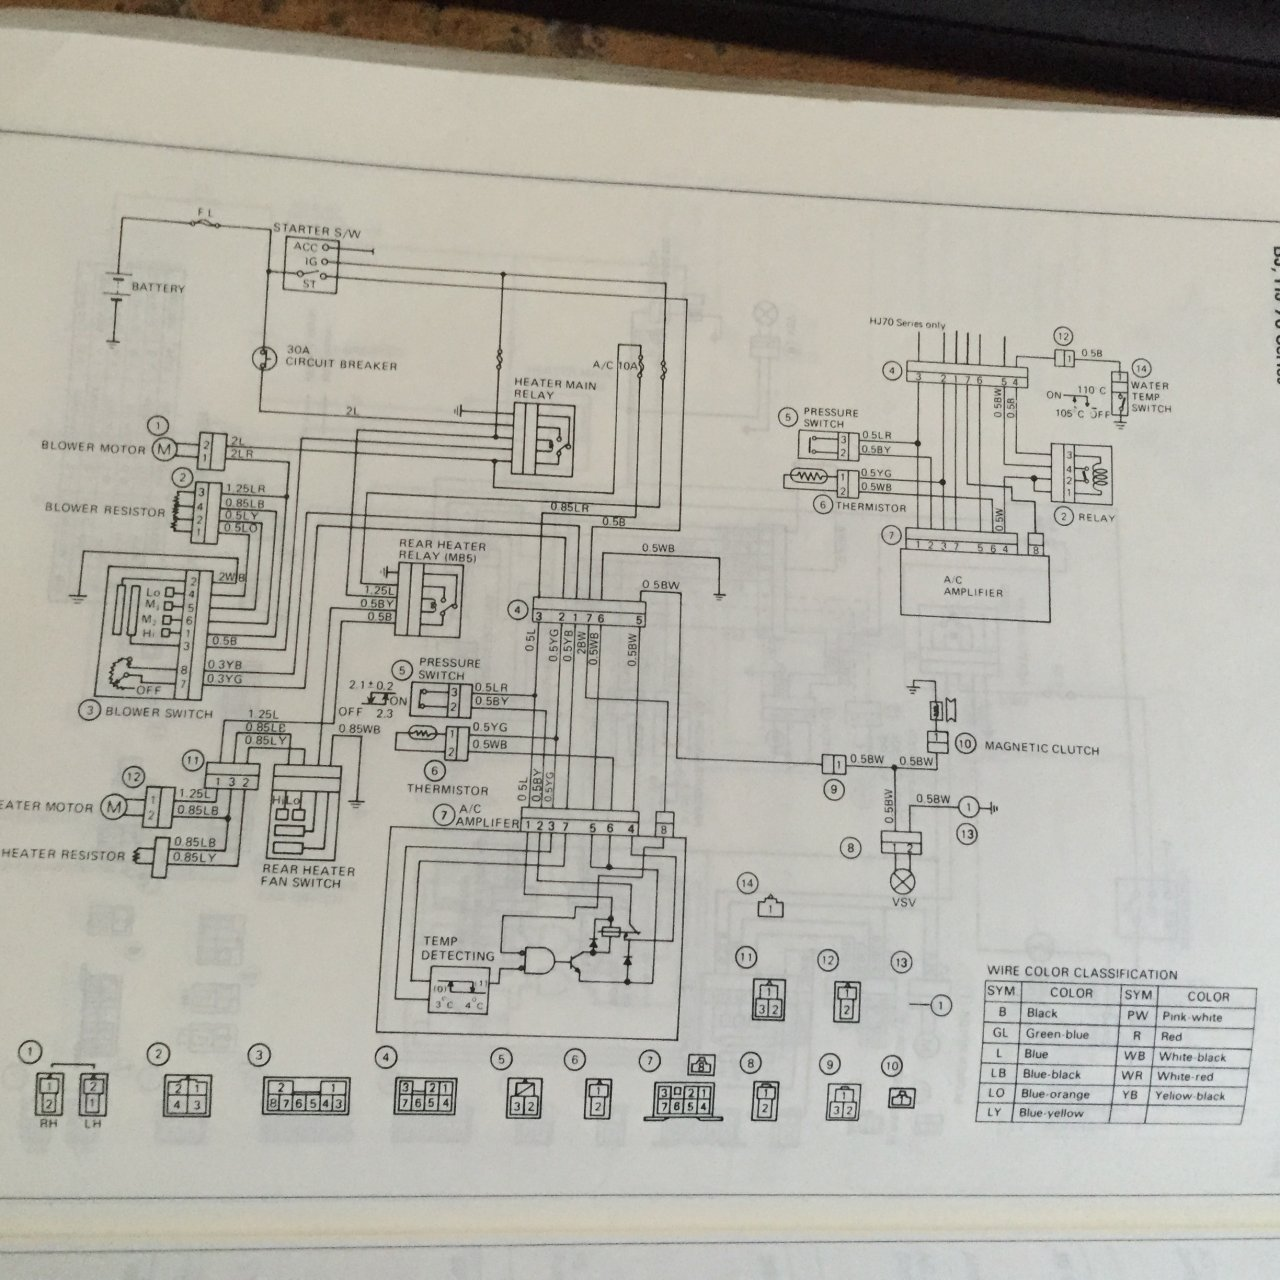 Bj74 Wiring Diagram Control Alternator For 12ht Ih8mud Forum Crazy Connection Rh Com